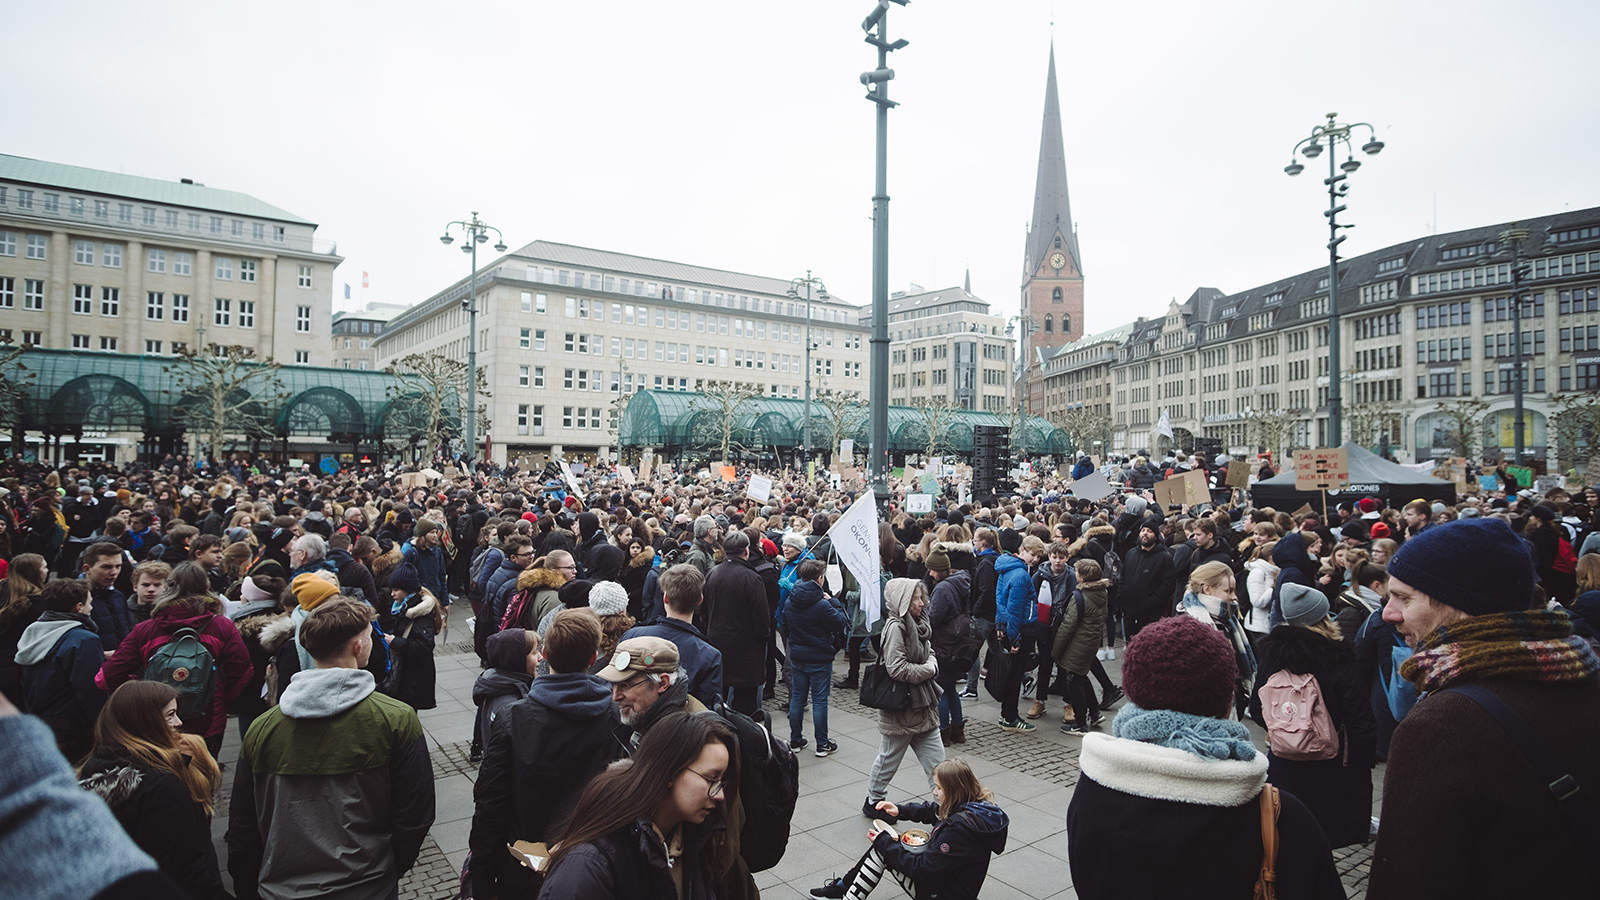 ecosia-joins-climate-strike-march-fridays-for-the-future-greta-thunberg-5